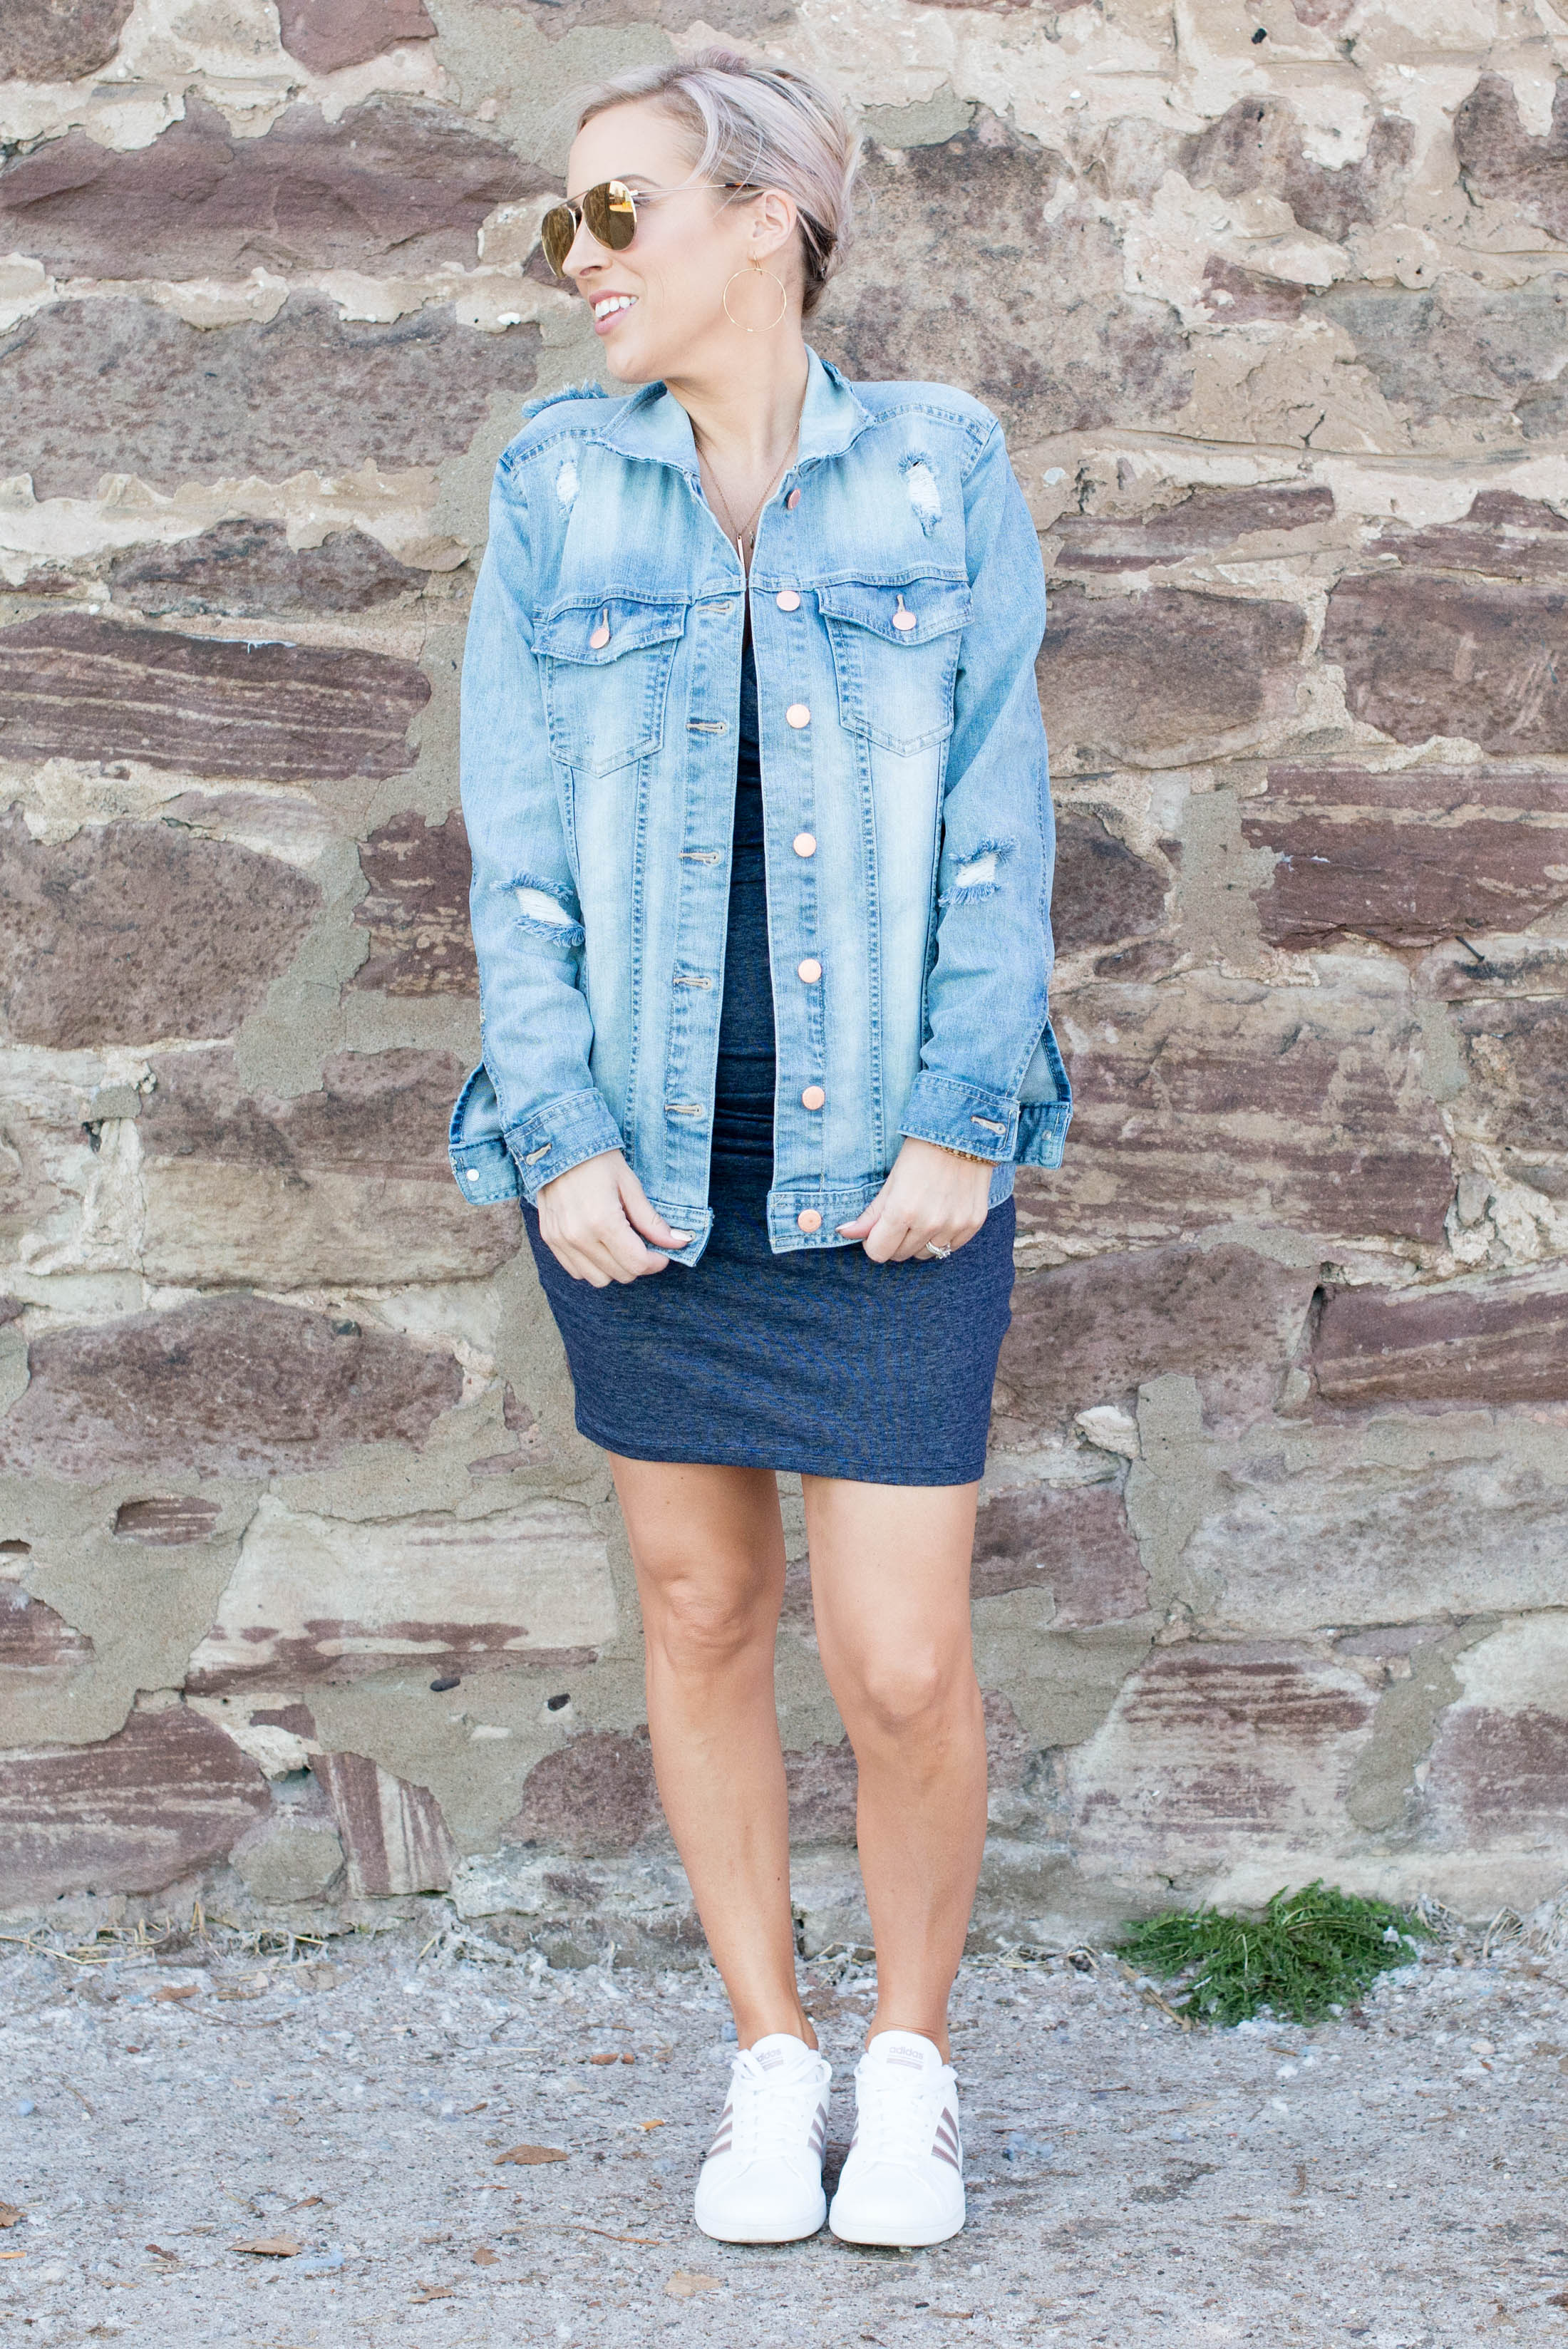 187f063cae Comfy t-shirt dress + oversized denim jacket + cute white sneaks = easy  summer ...